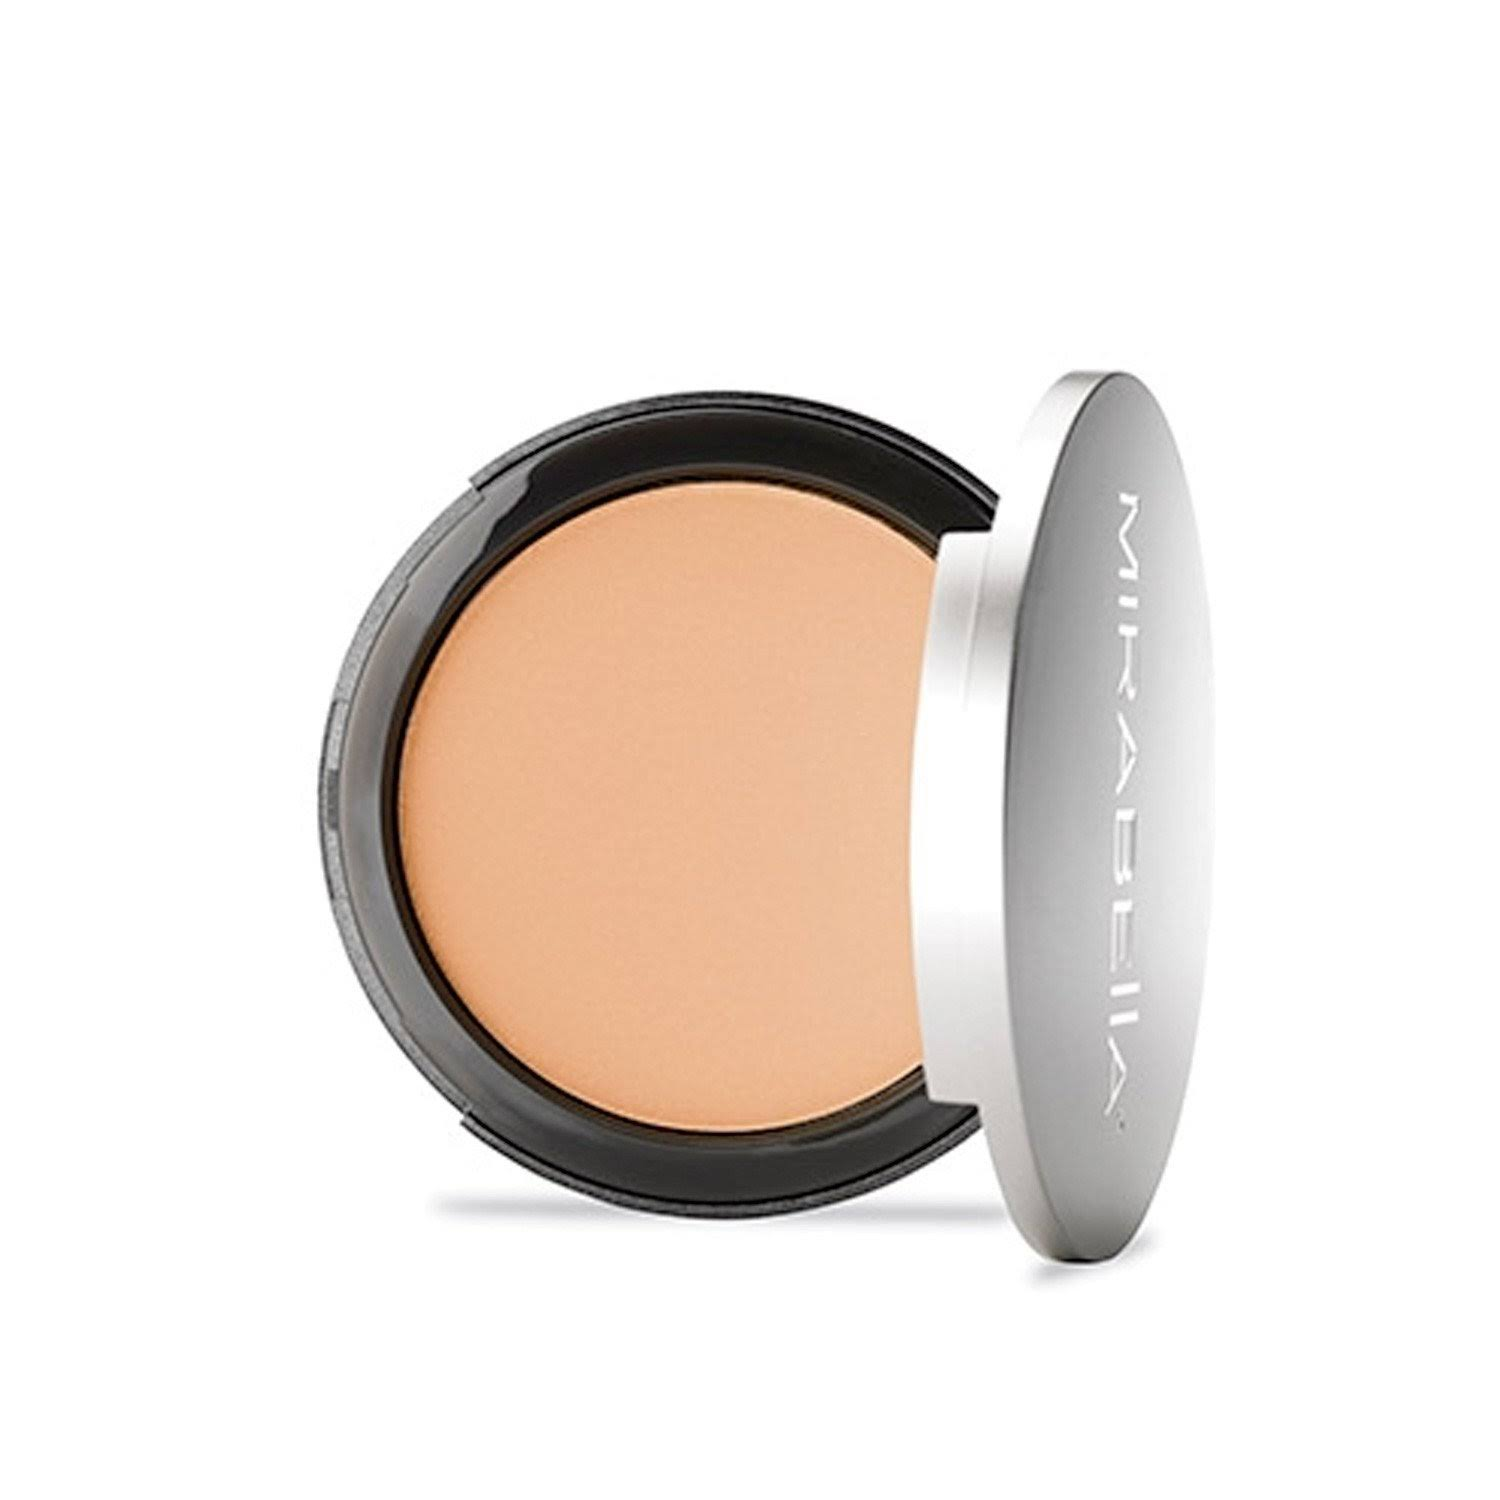 Mirabella Pure Press Mineral Powder - II